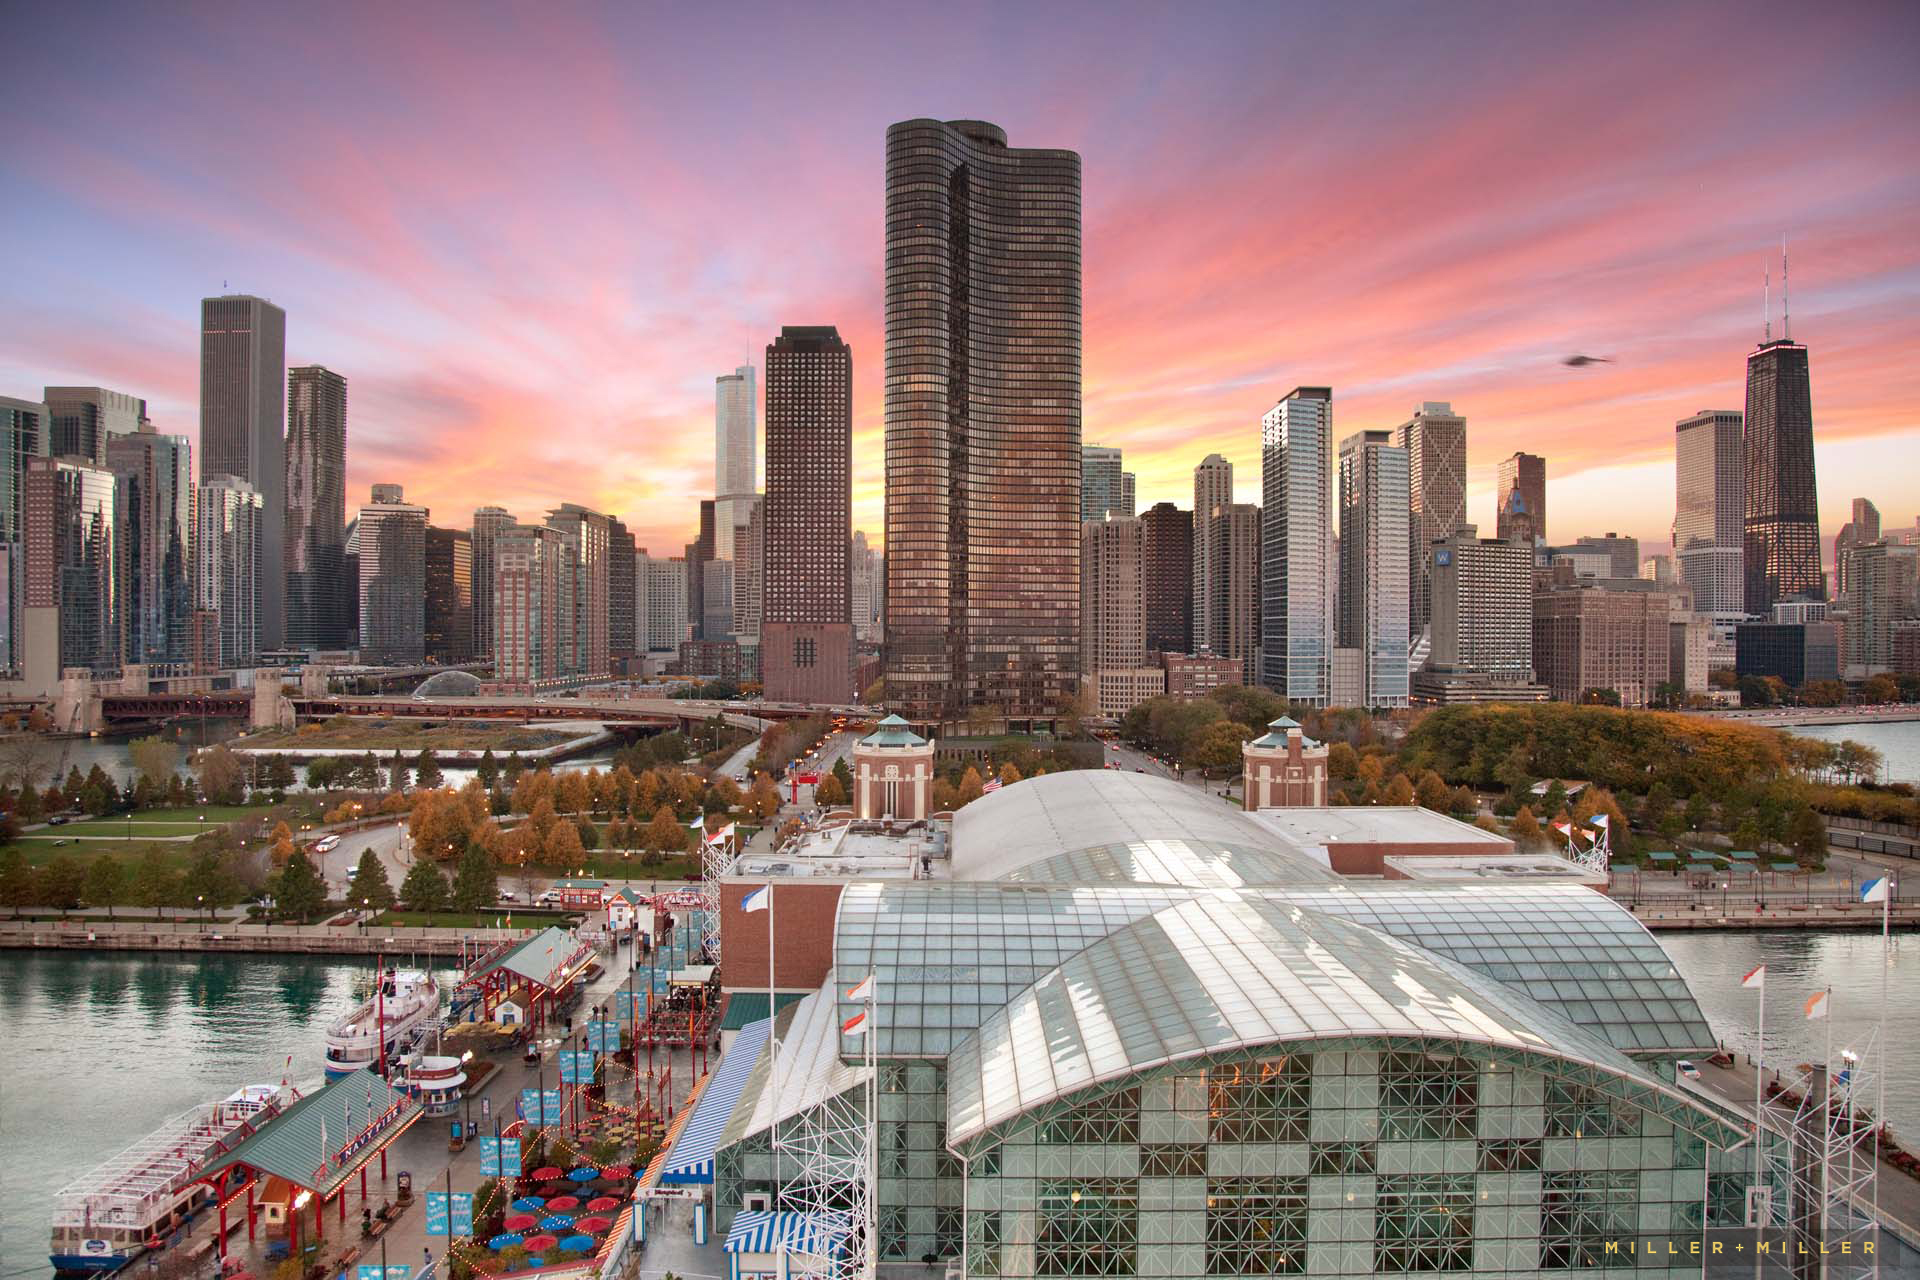 navy-pier-centennial-ferris-wheel-skyline-view-chicago